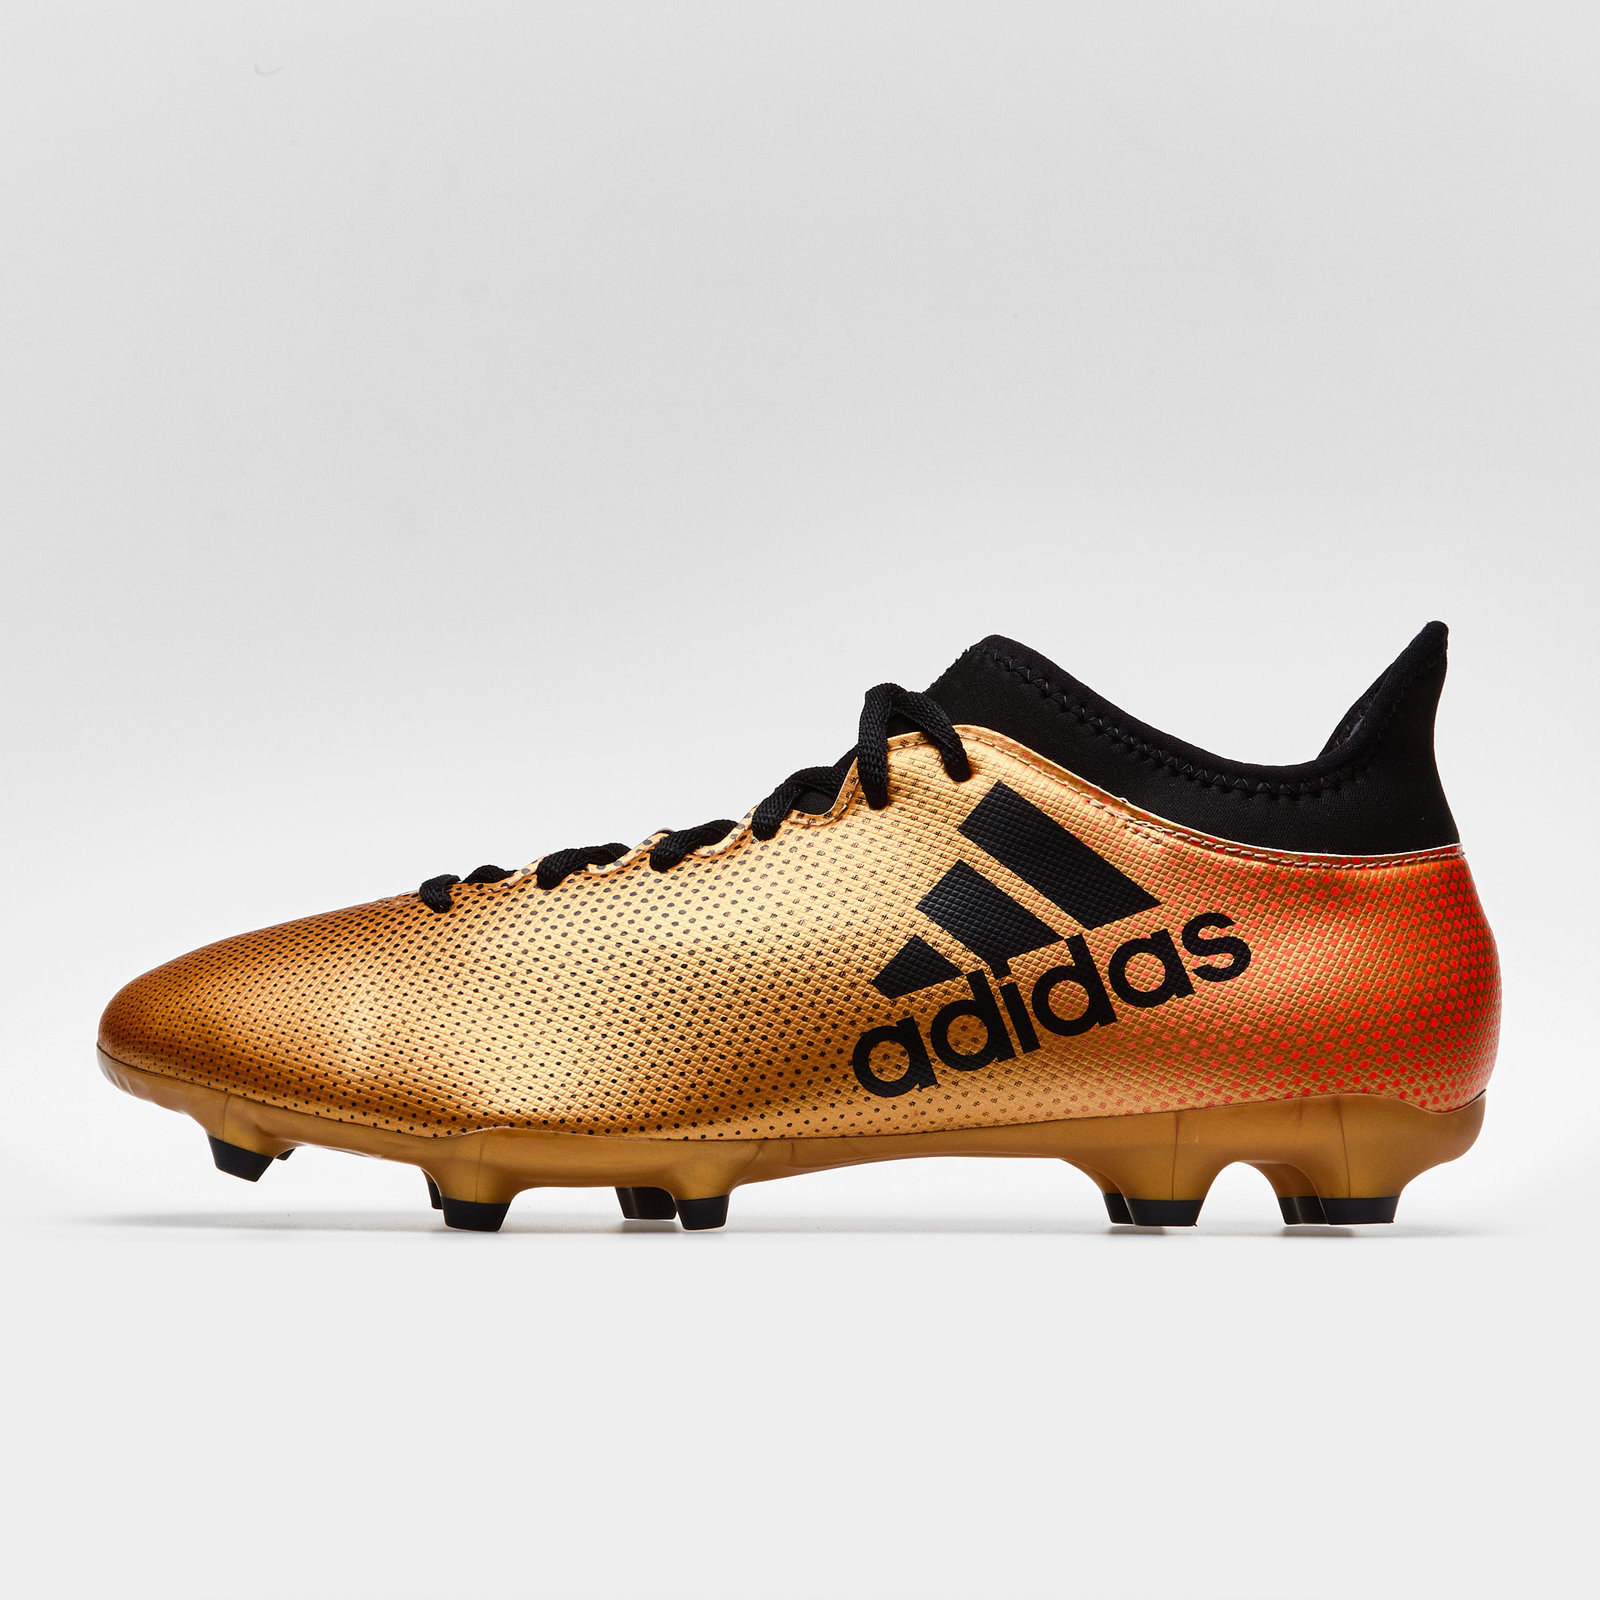 55c8f7ce1a4b ... 5 star 9cce5 24873; australia adidas mens x 17.3 firm ground football  boots studs trainers sports shoes gold a2706 494c8